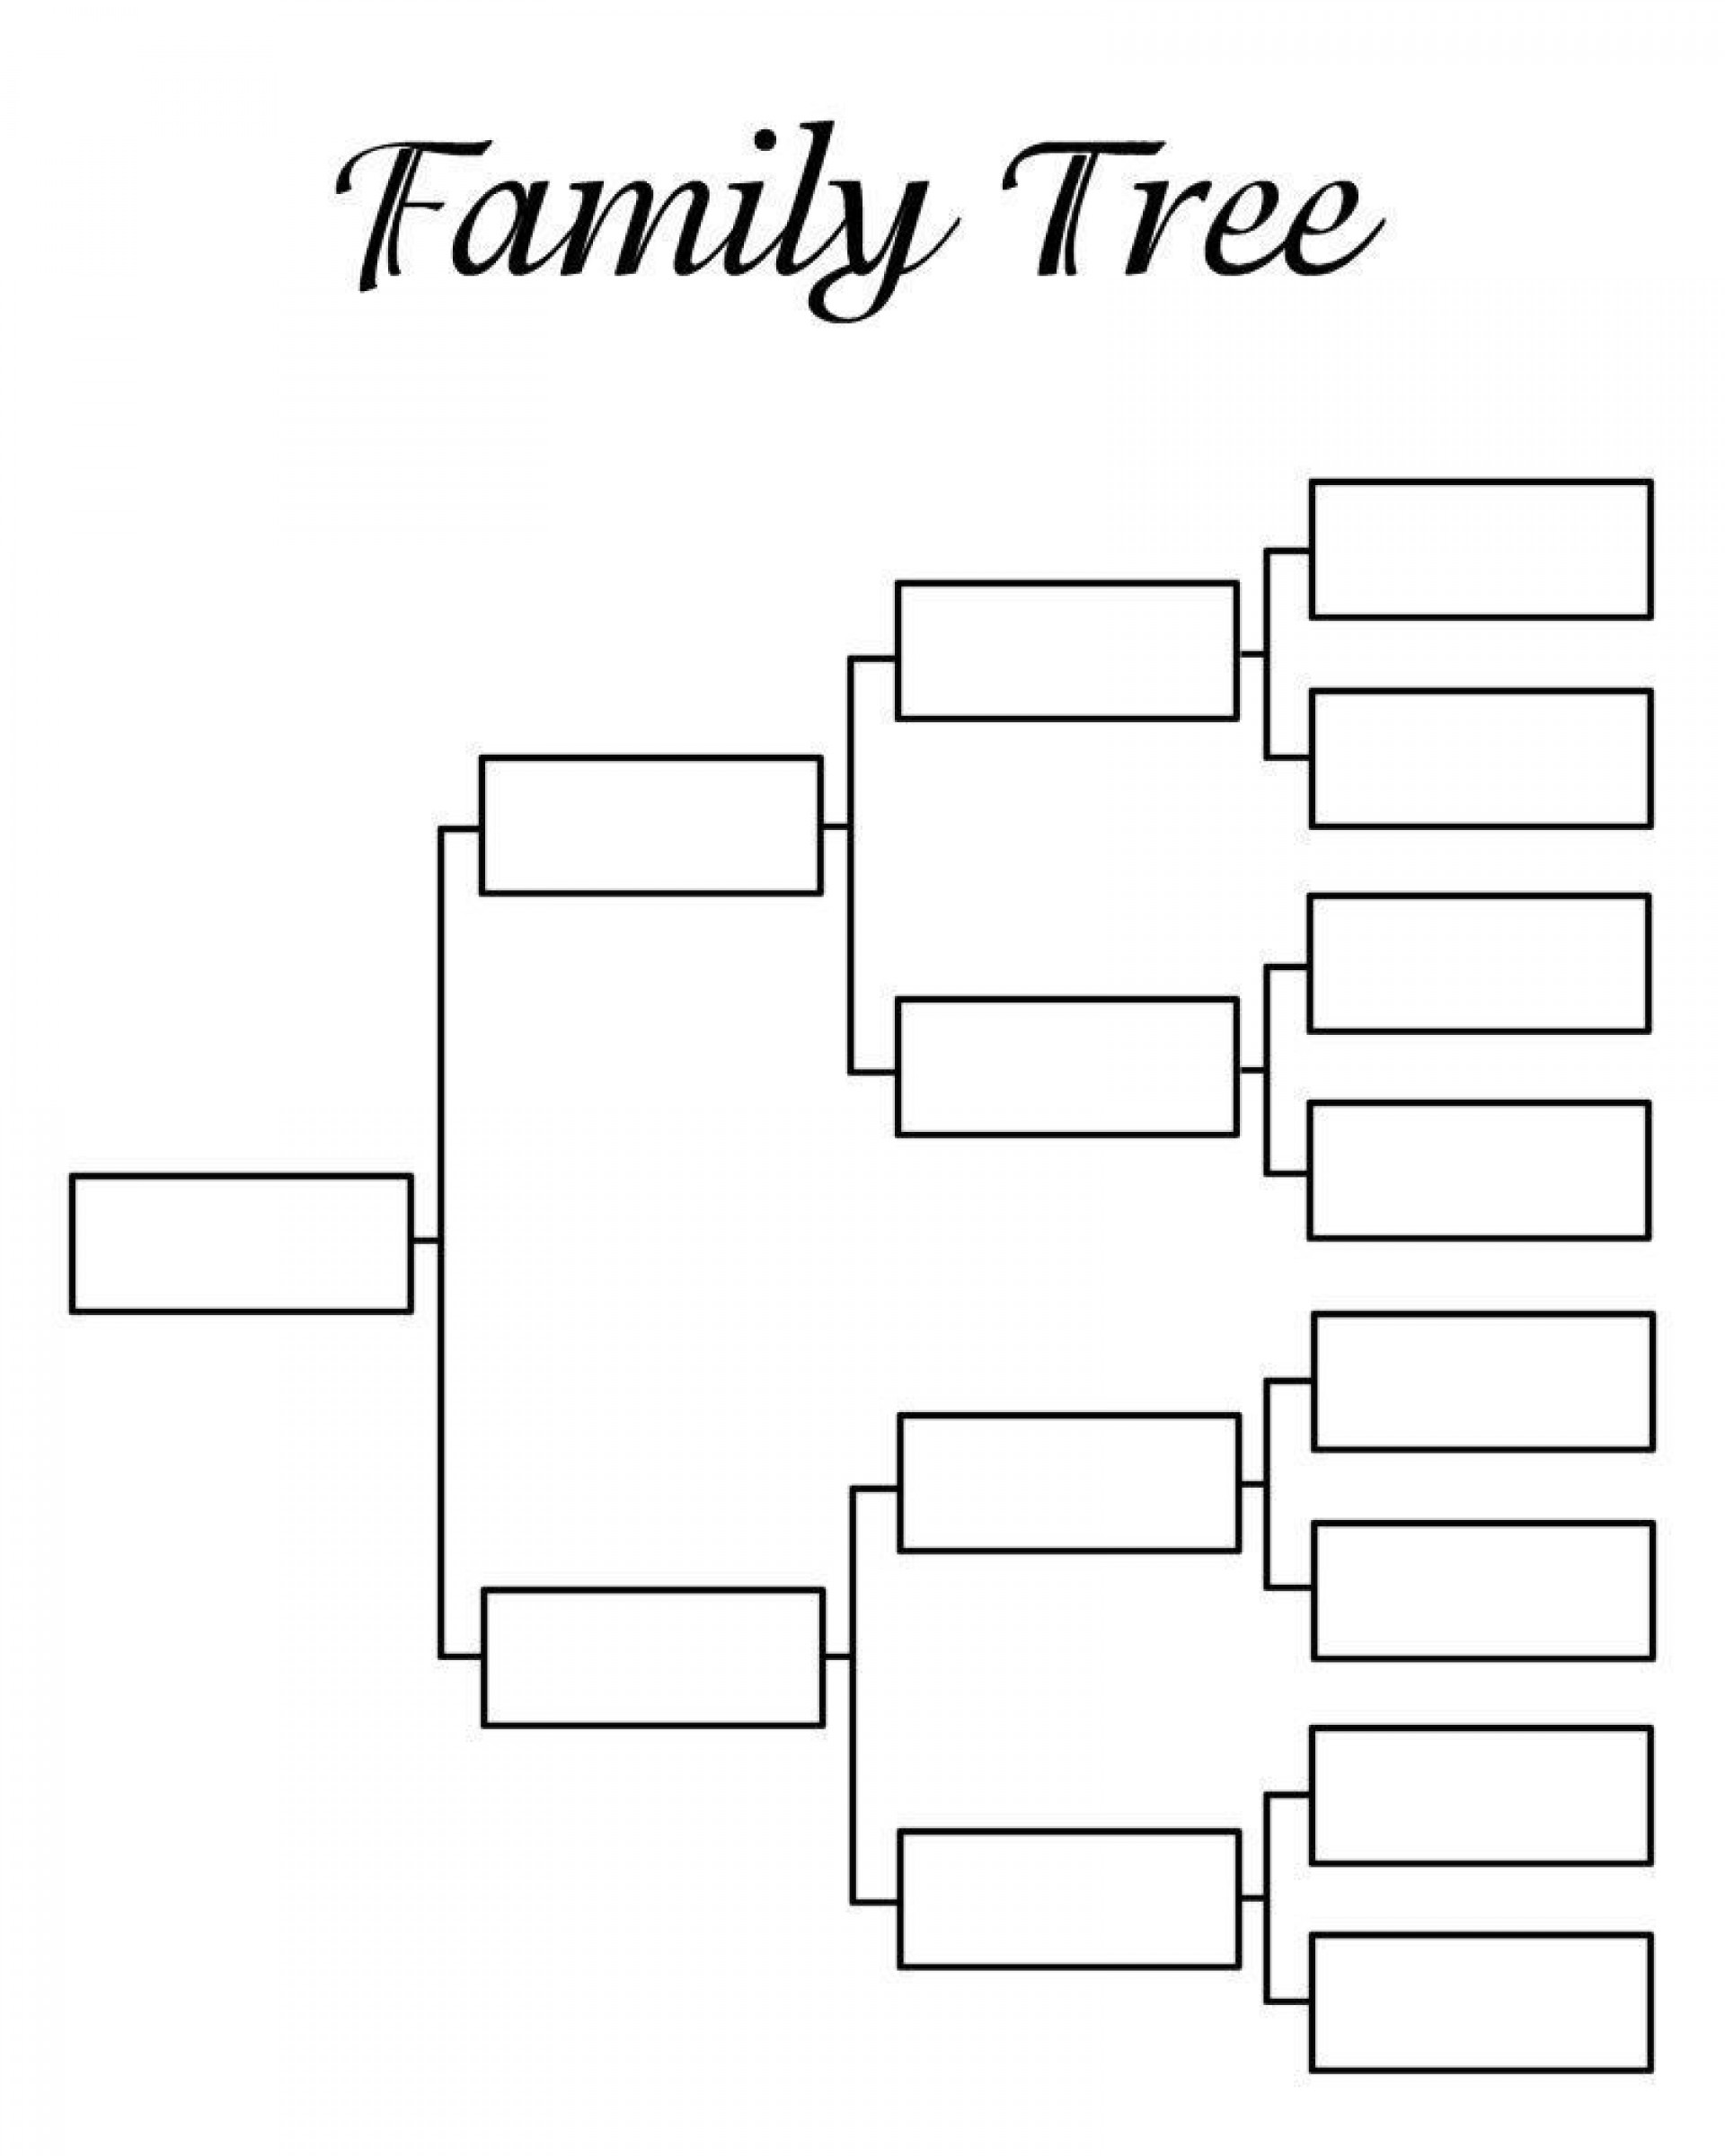 005 Striking Family Tree Template Google Doc Inspiration  Docs I There A On Free Editable1920